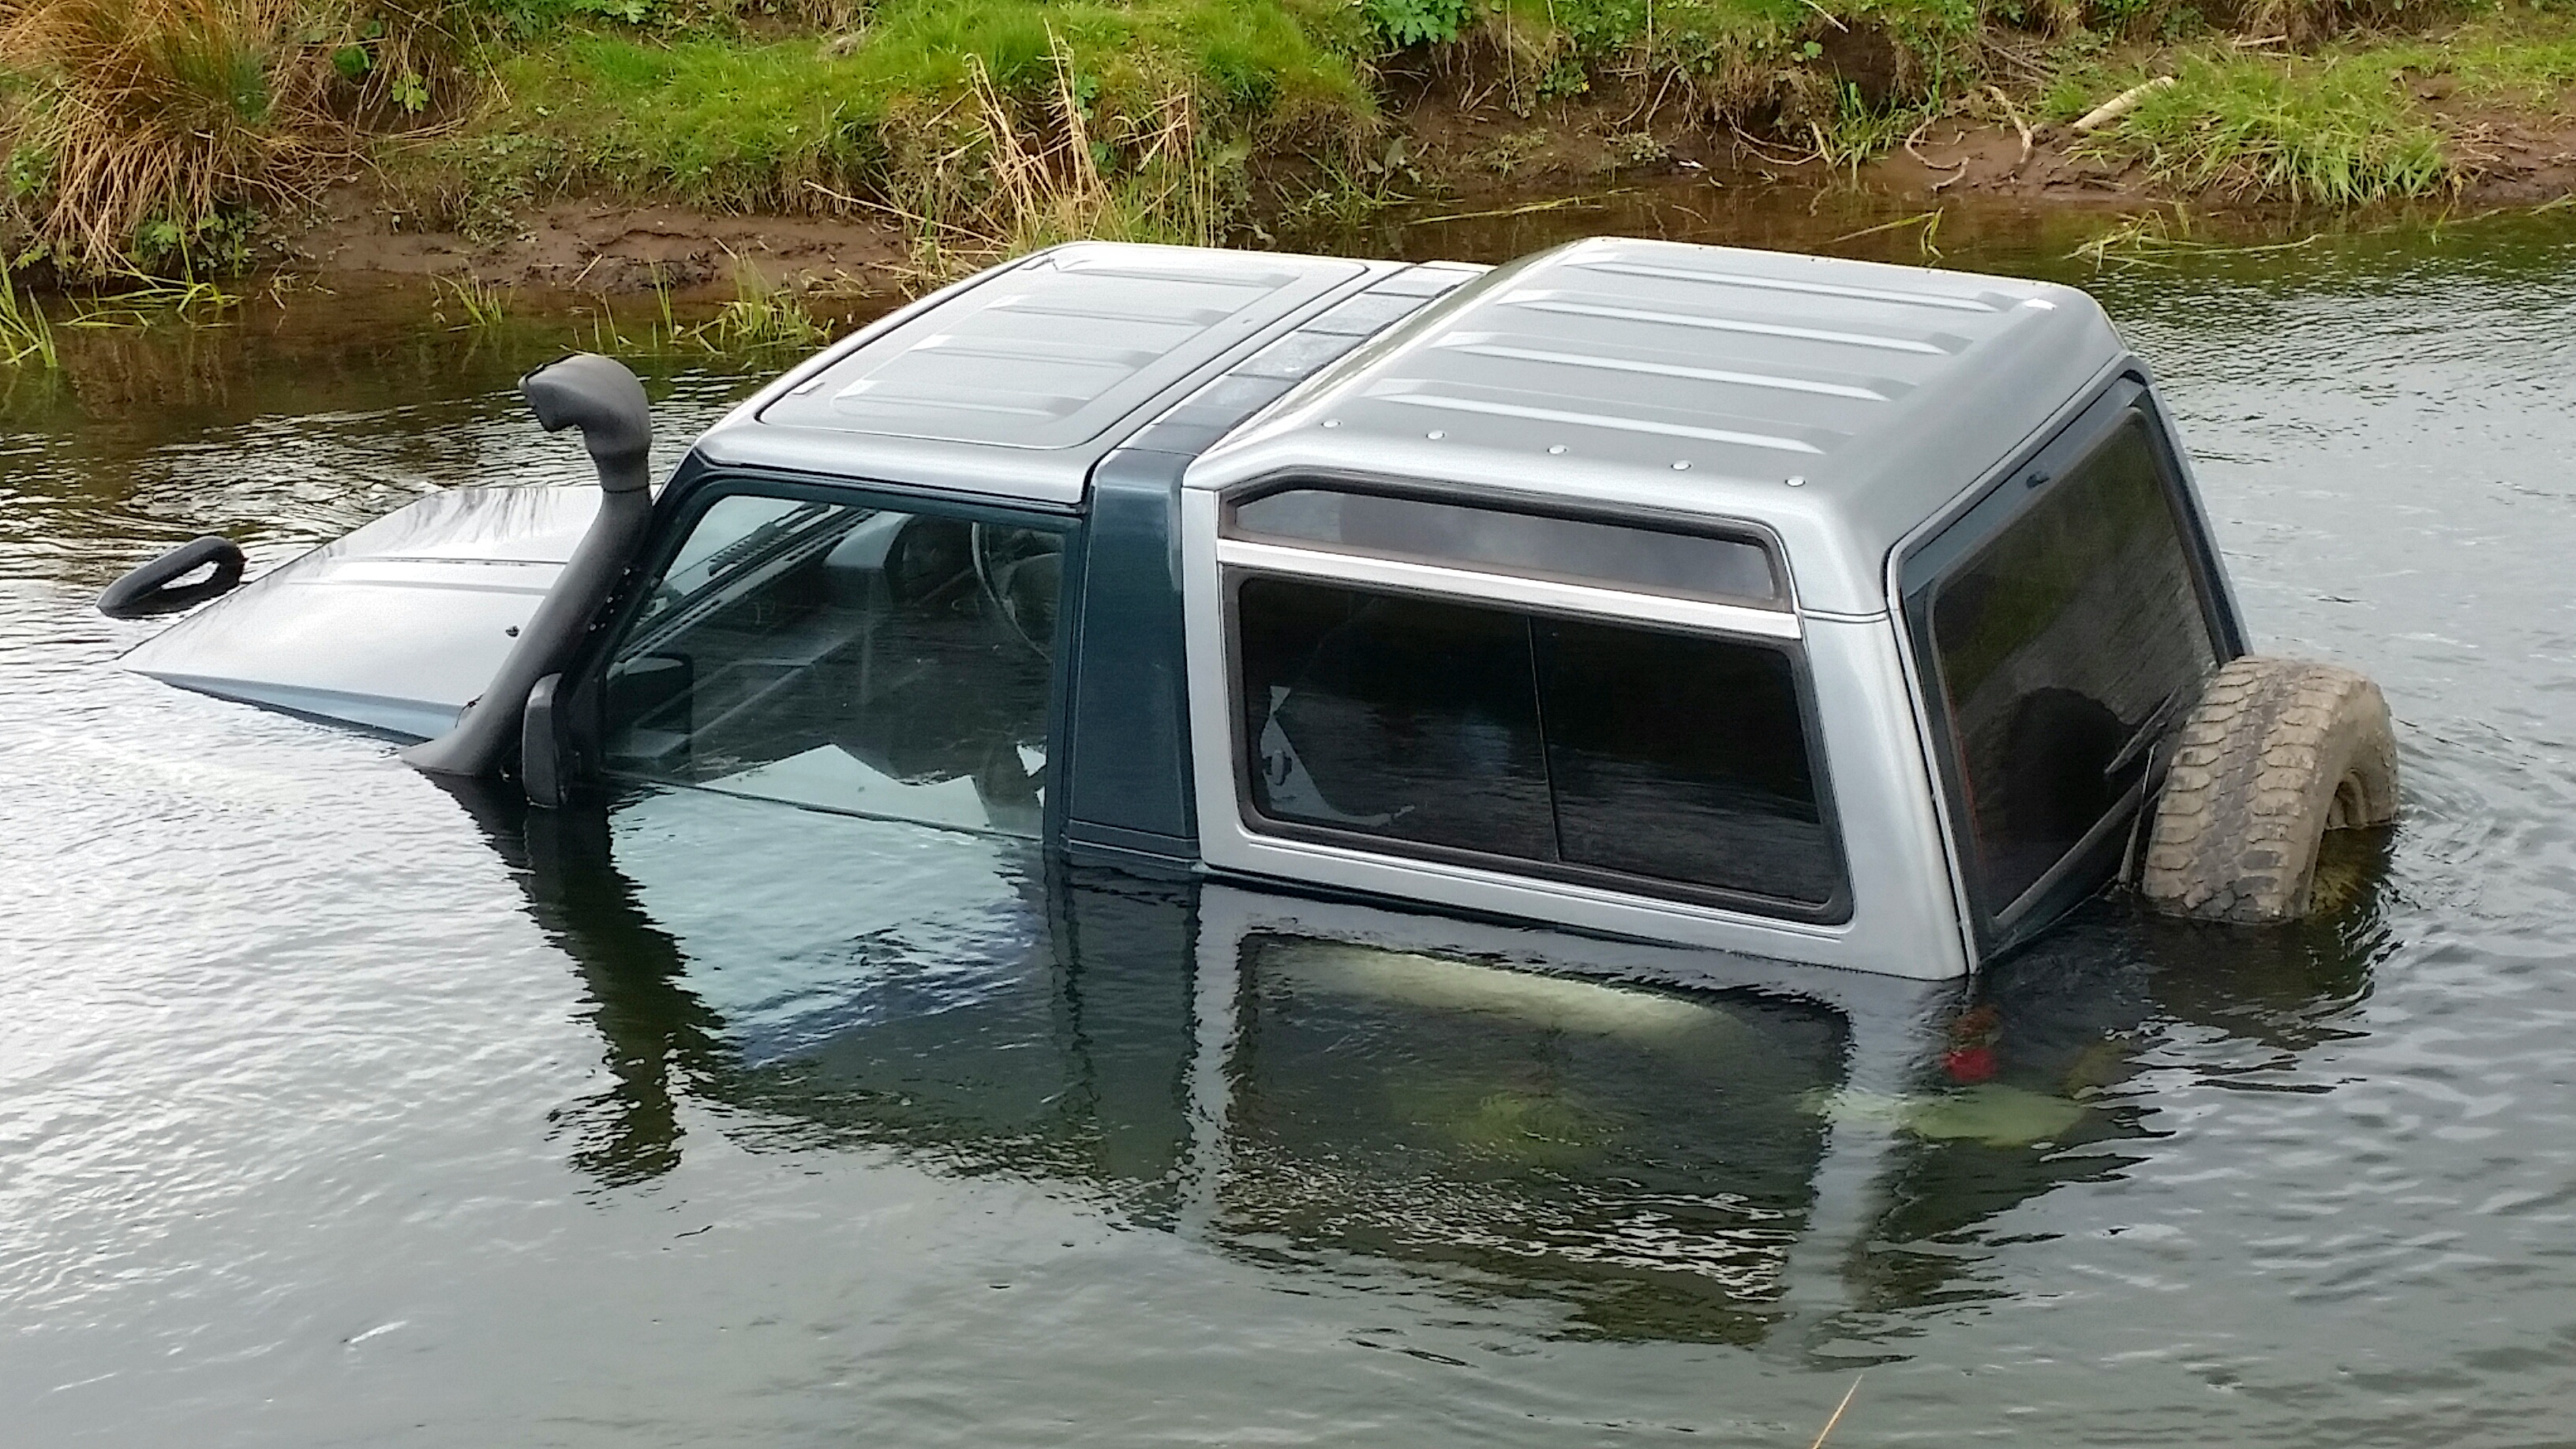 4x4 left submerged in water near the Dighty was result of test drive gone wrong